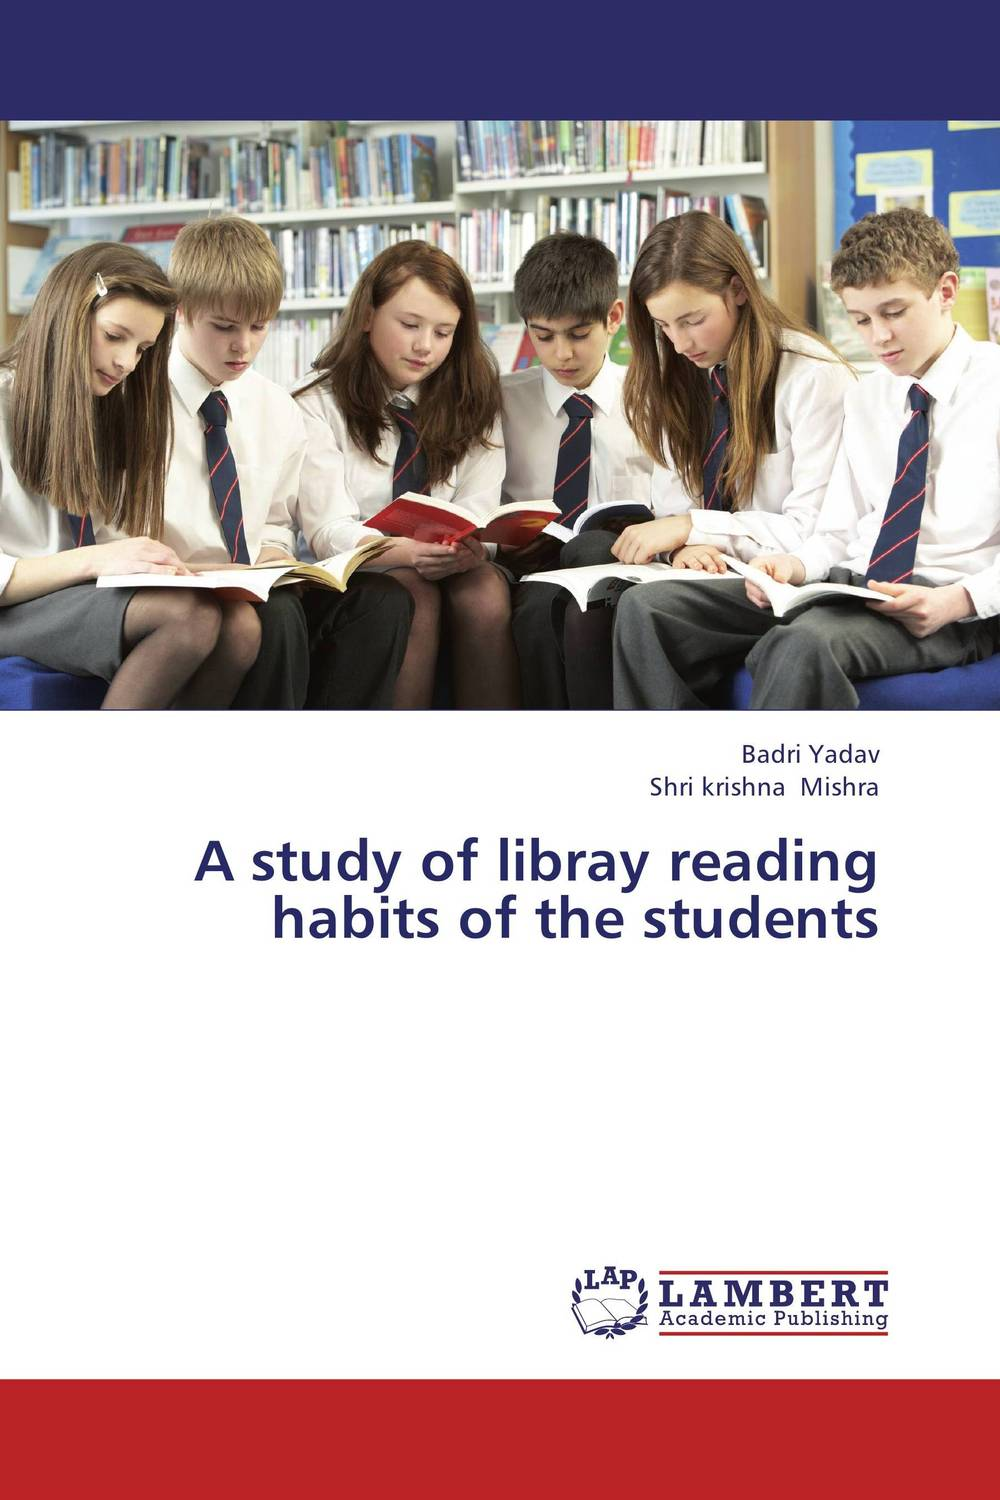 A study of libray reading habits of the students a study of the religio political thought of abdurrahman wahid